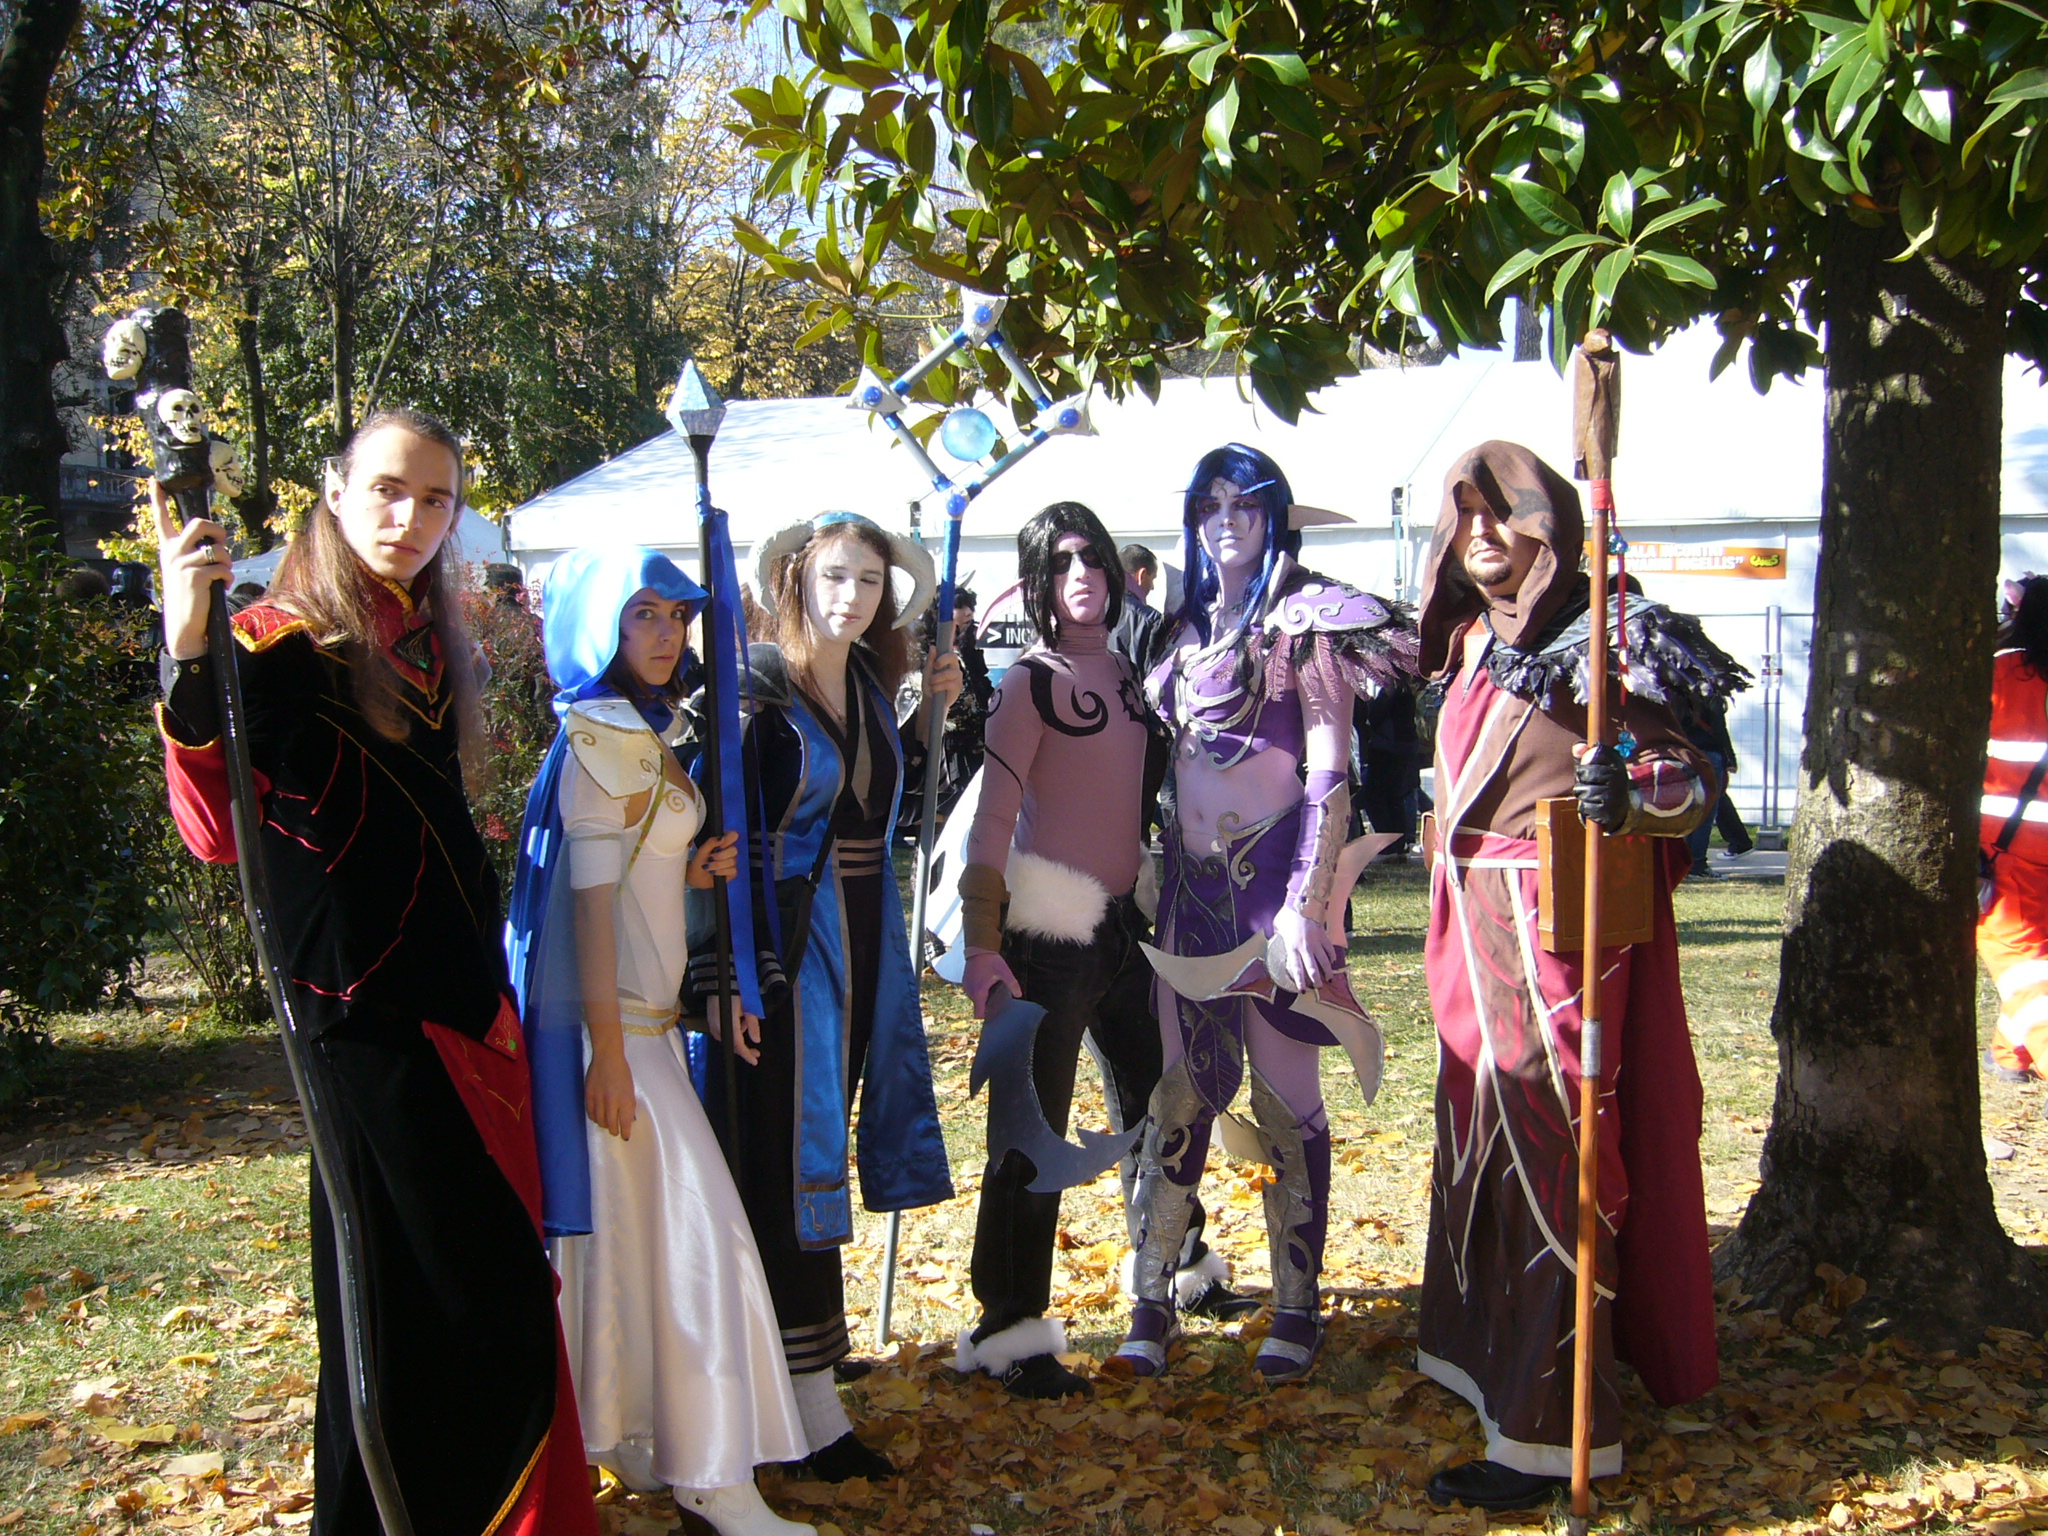 warcraft-cosplay-event